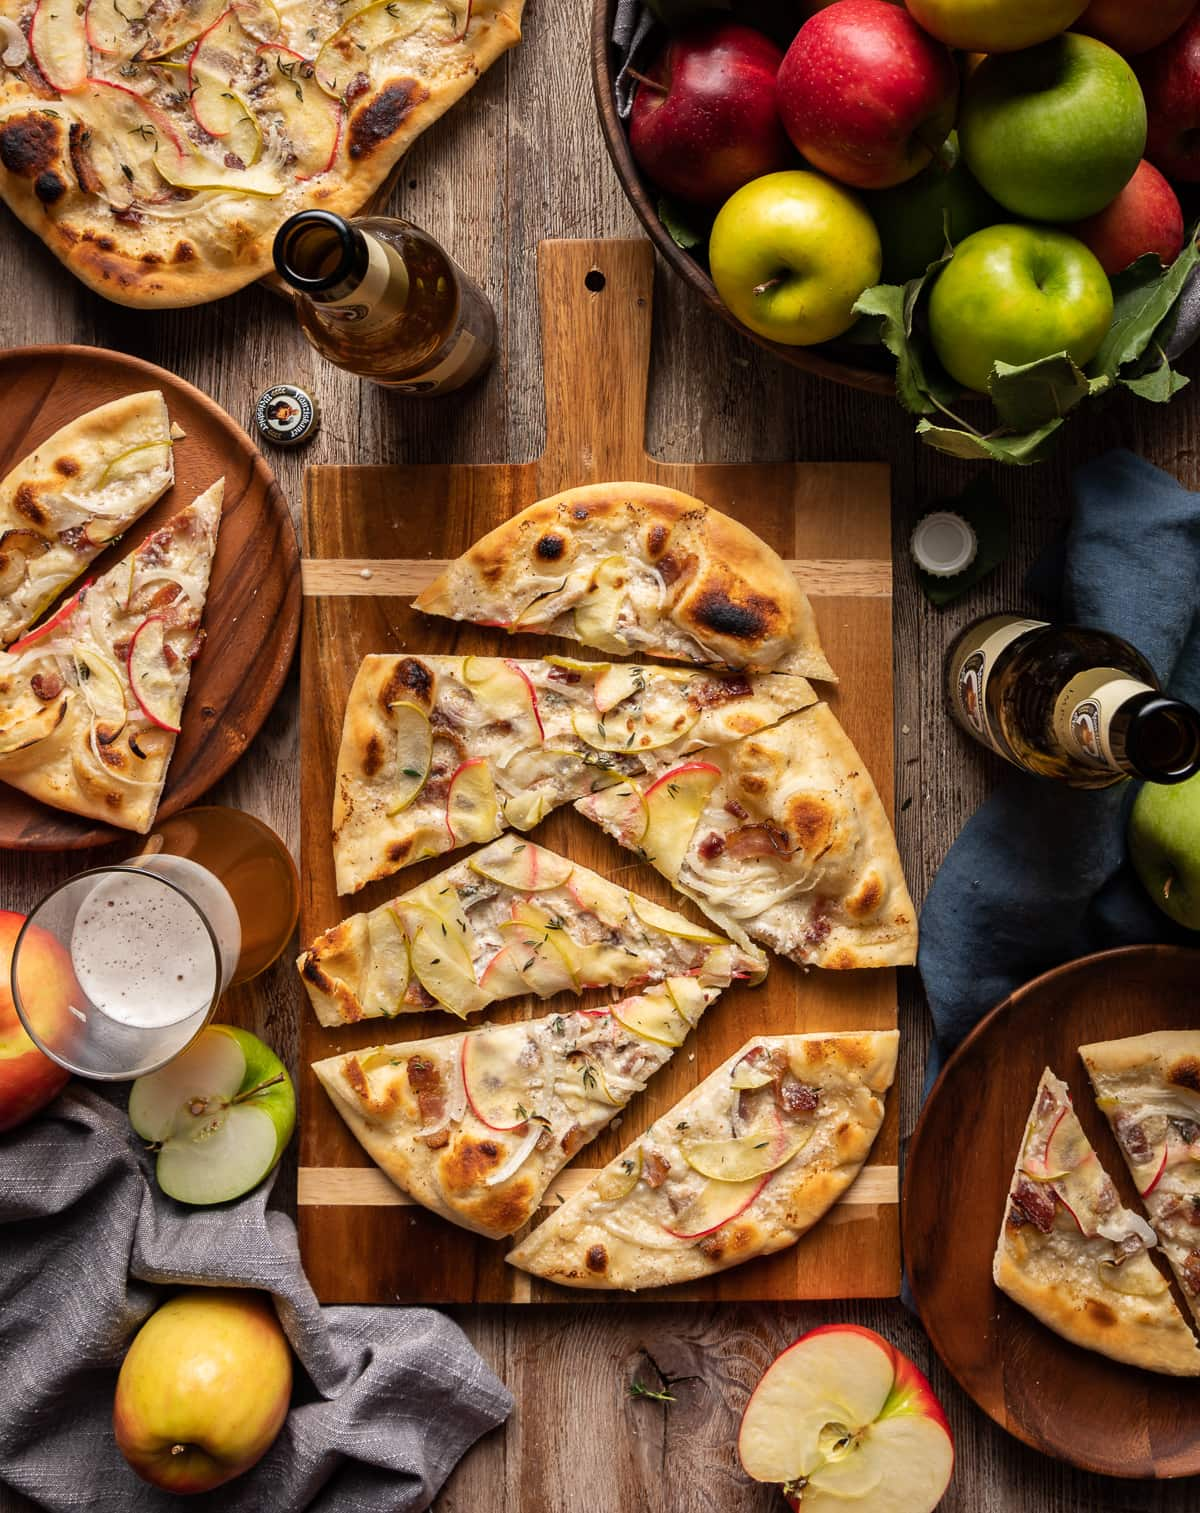 flammkuchen flatbread with apples onion and bacon cut into slices on on a cutting board with whole apples and bottles of german beer